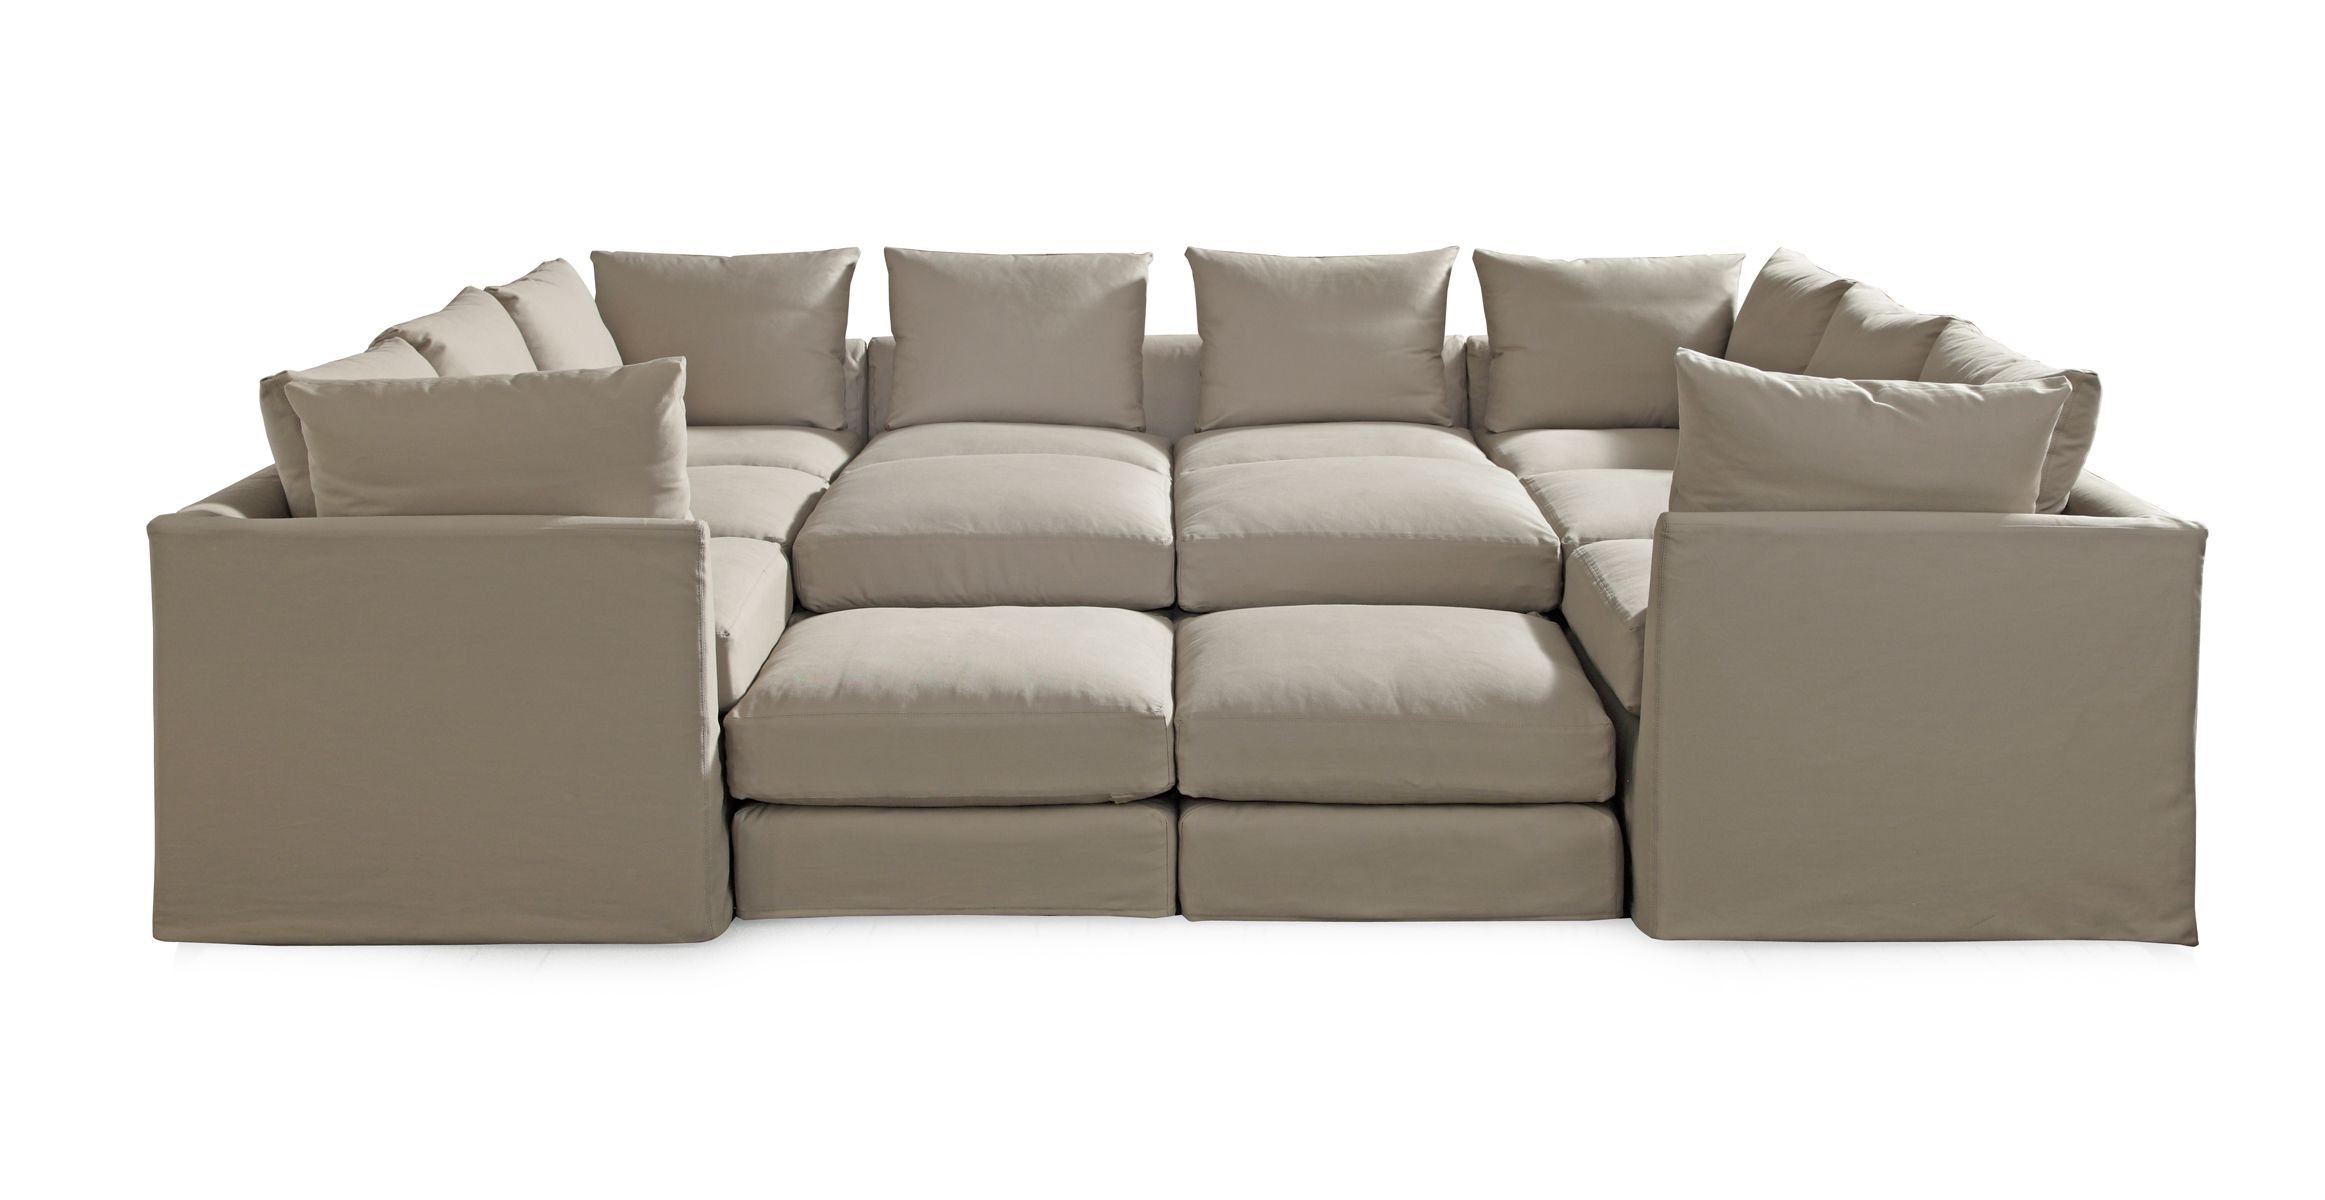 Pit Sectional Couches dr. pitt sectional- pit style sectional. great for family hang out